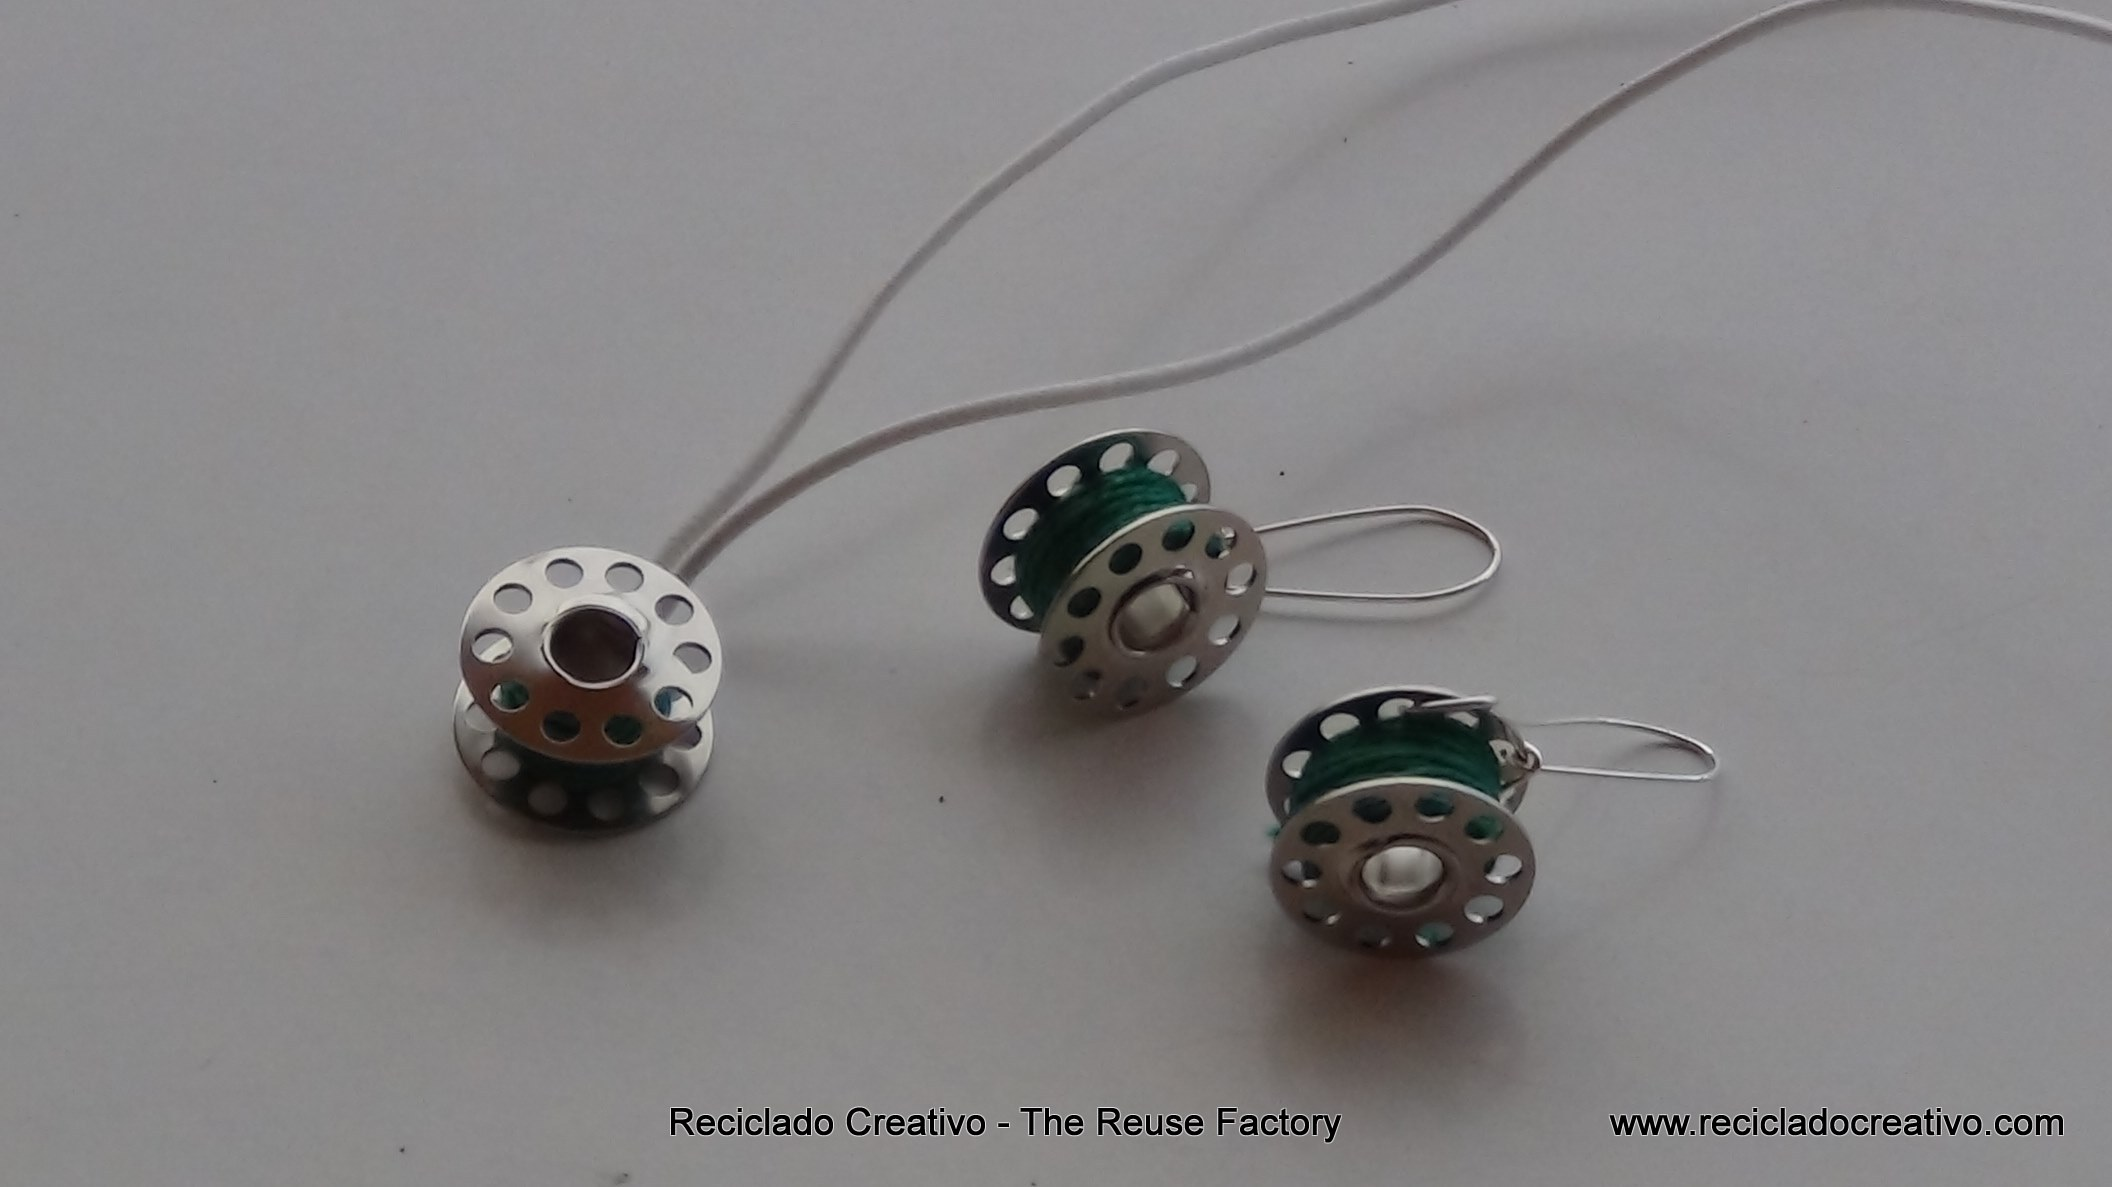 Colgante para collar y pendientes realizados reutilizando carretes de hilo de máquina de coser. - How to make earings and necklace with sewing machine bobbins